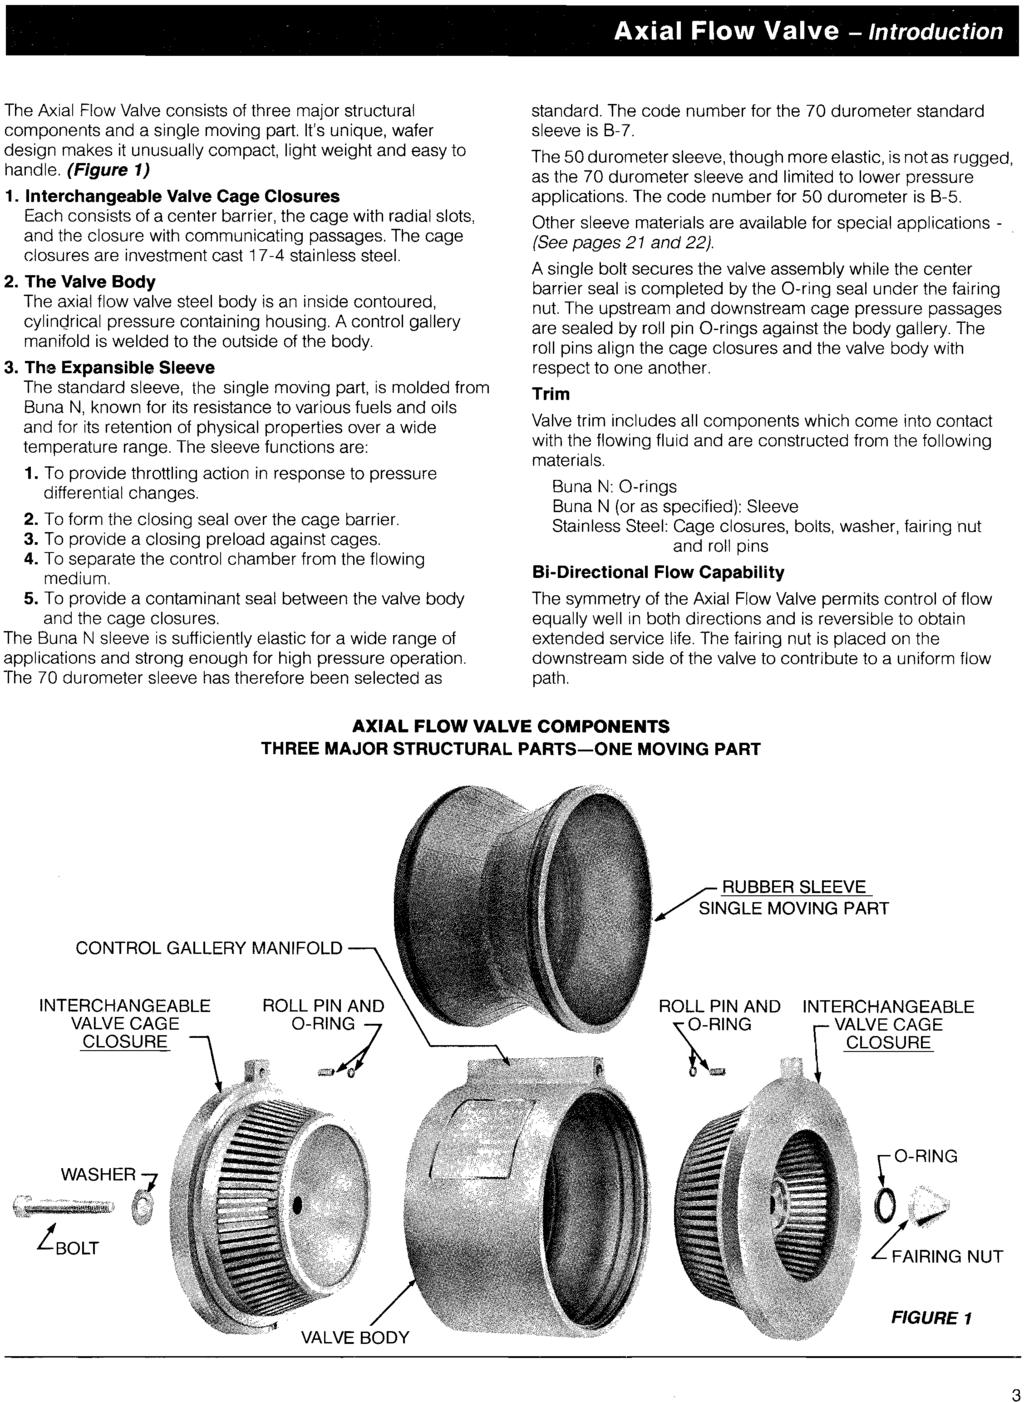 Axial Flow Valves Class 300 : Axial flow valves and series inch thru